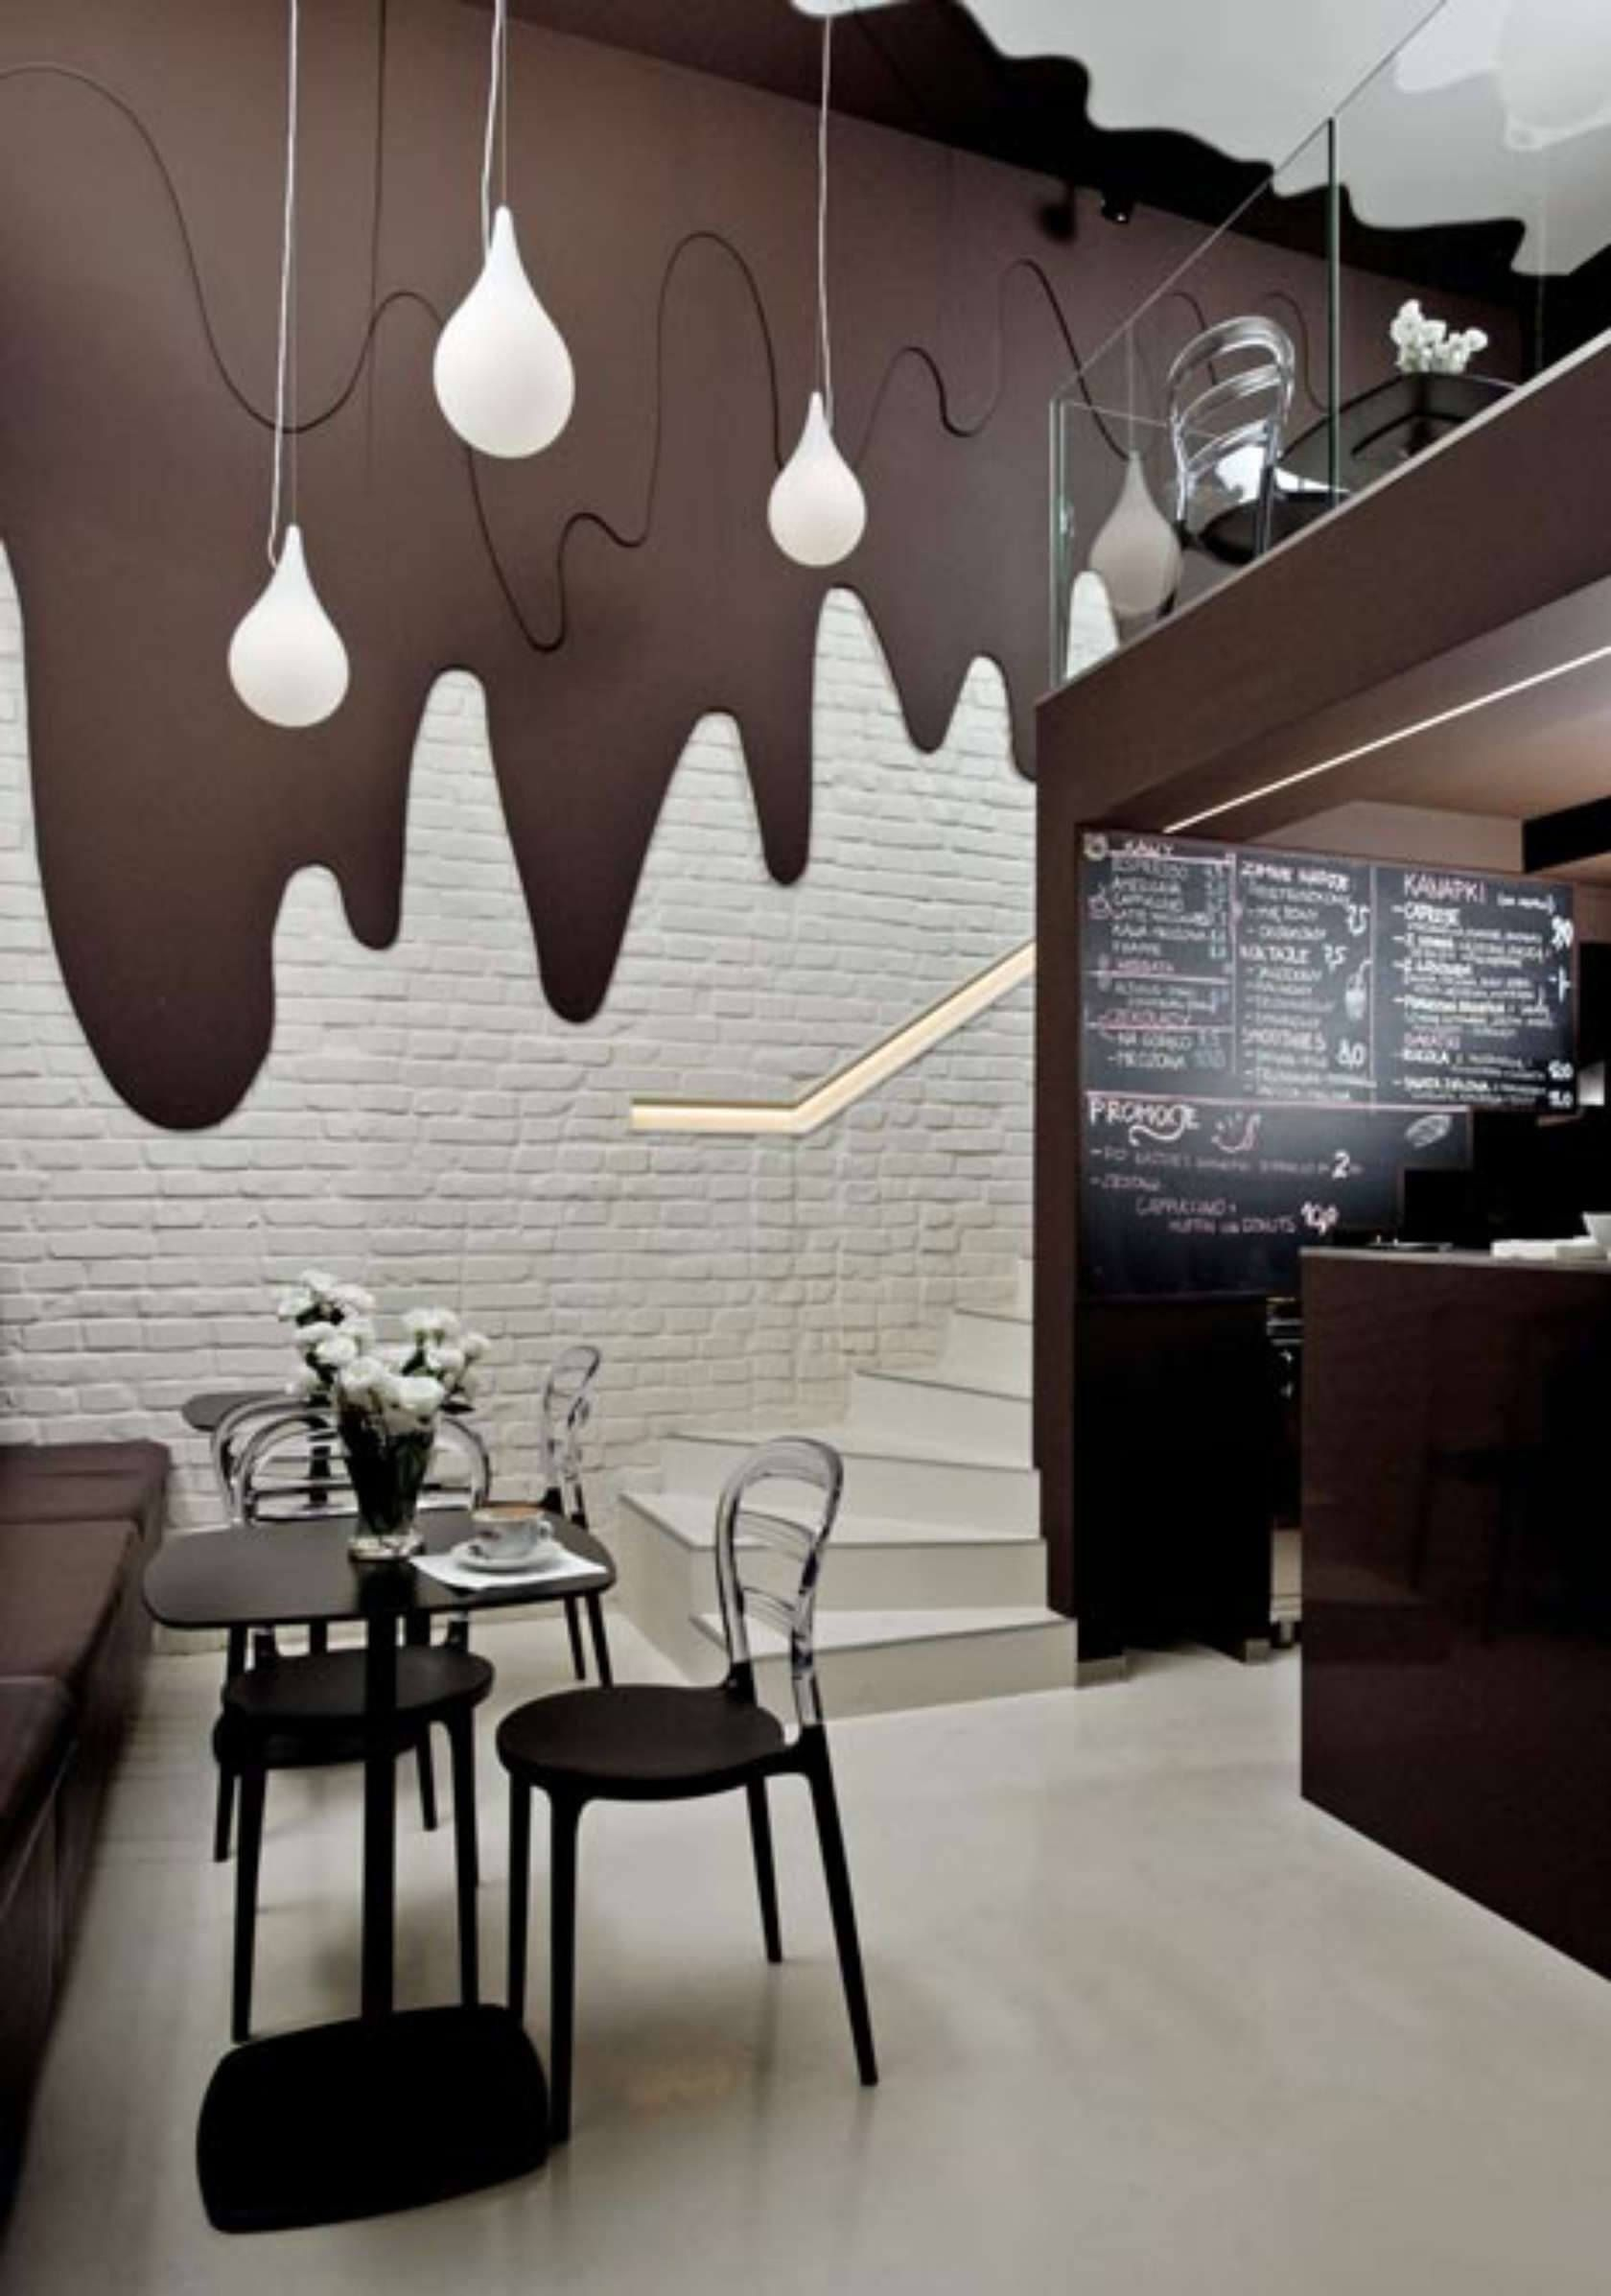 Expressive Cafe Wall Decorations : Maintaining Decorum Of The